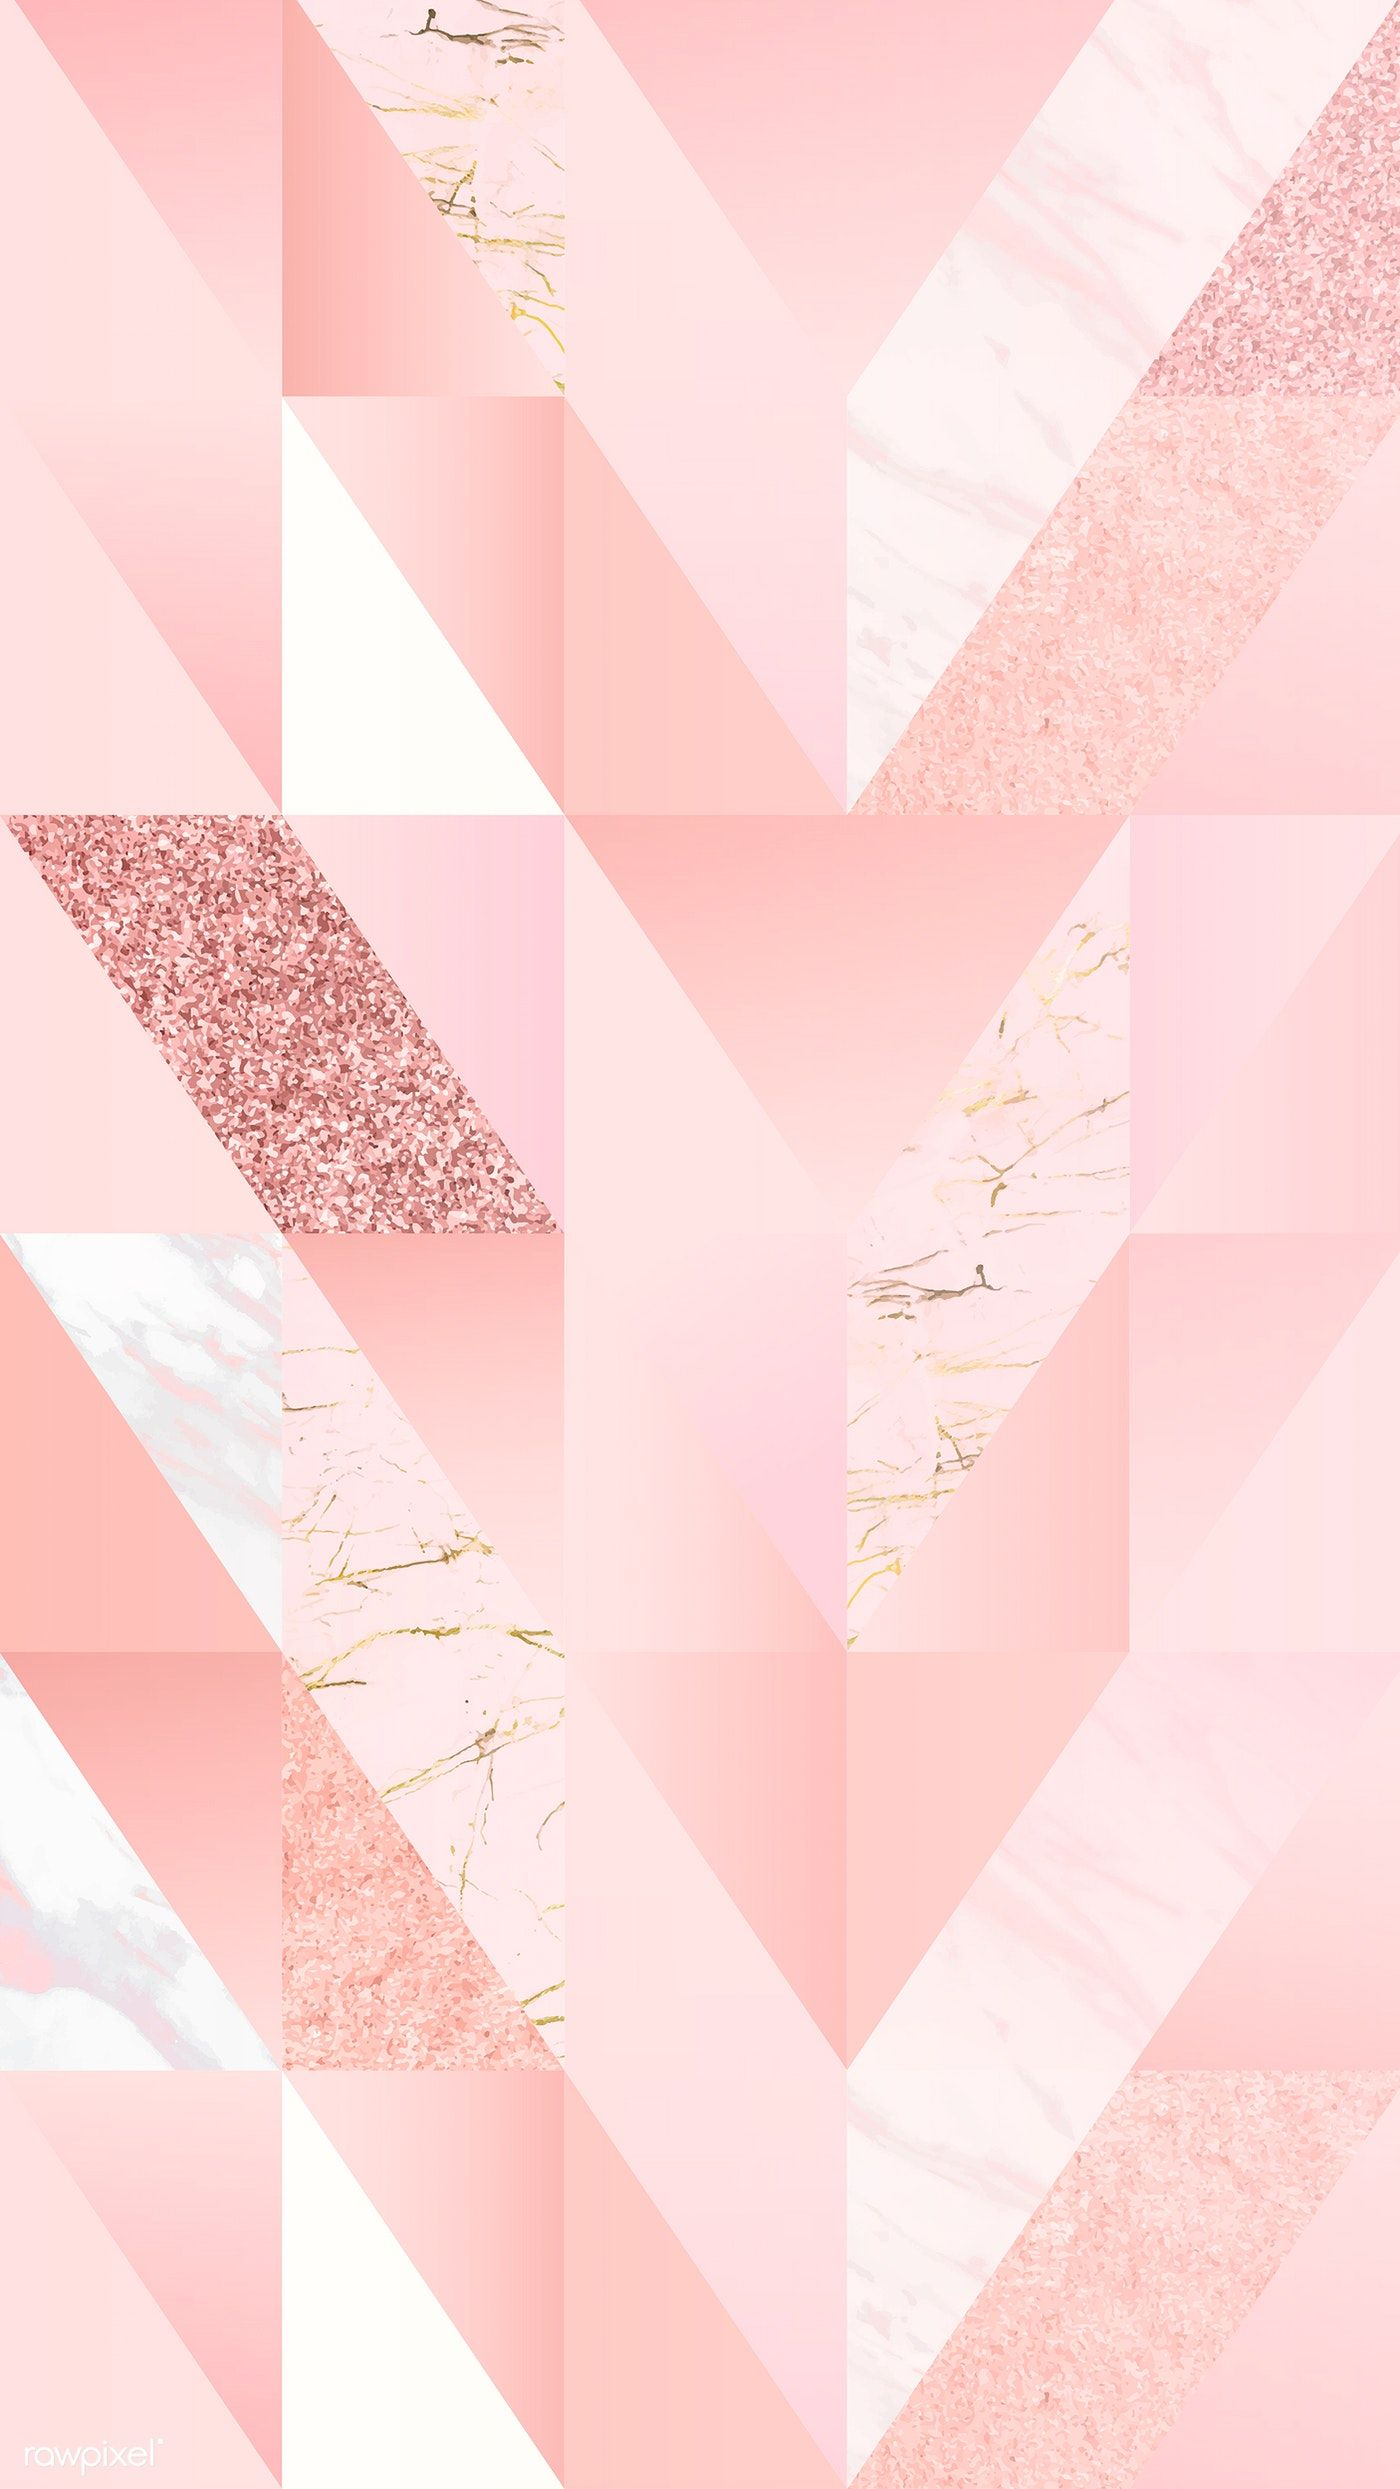 Pink Feminine Geometric Background Vector Free Image By Rawpixel